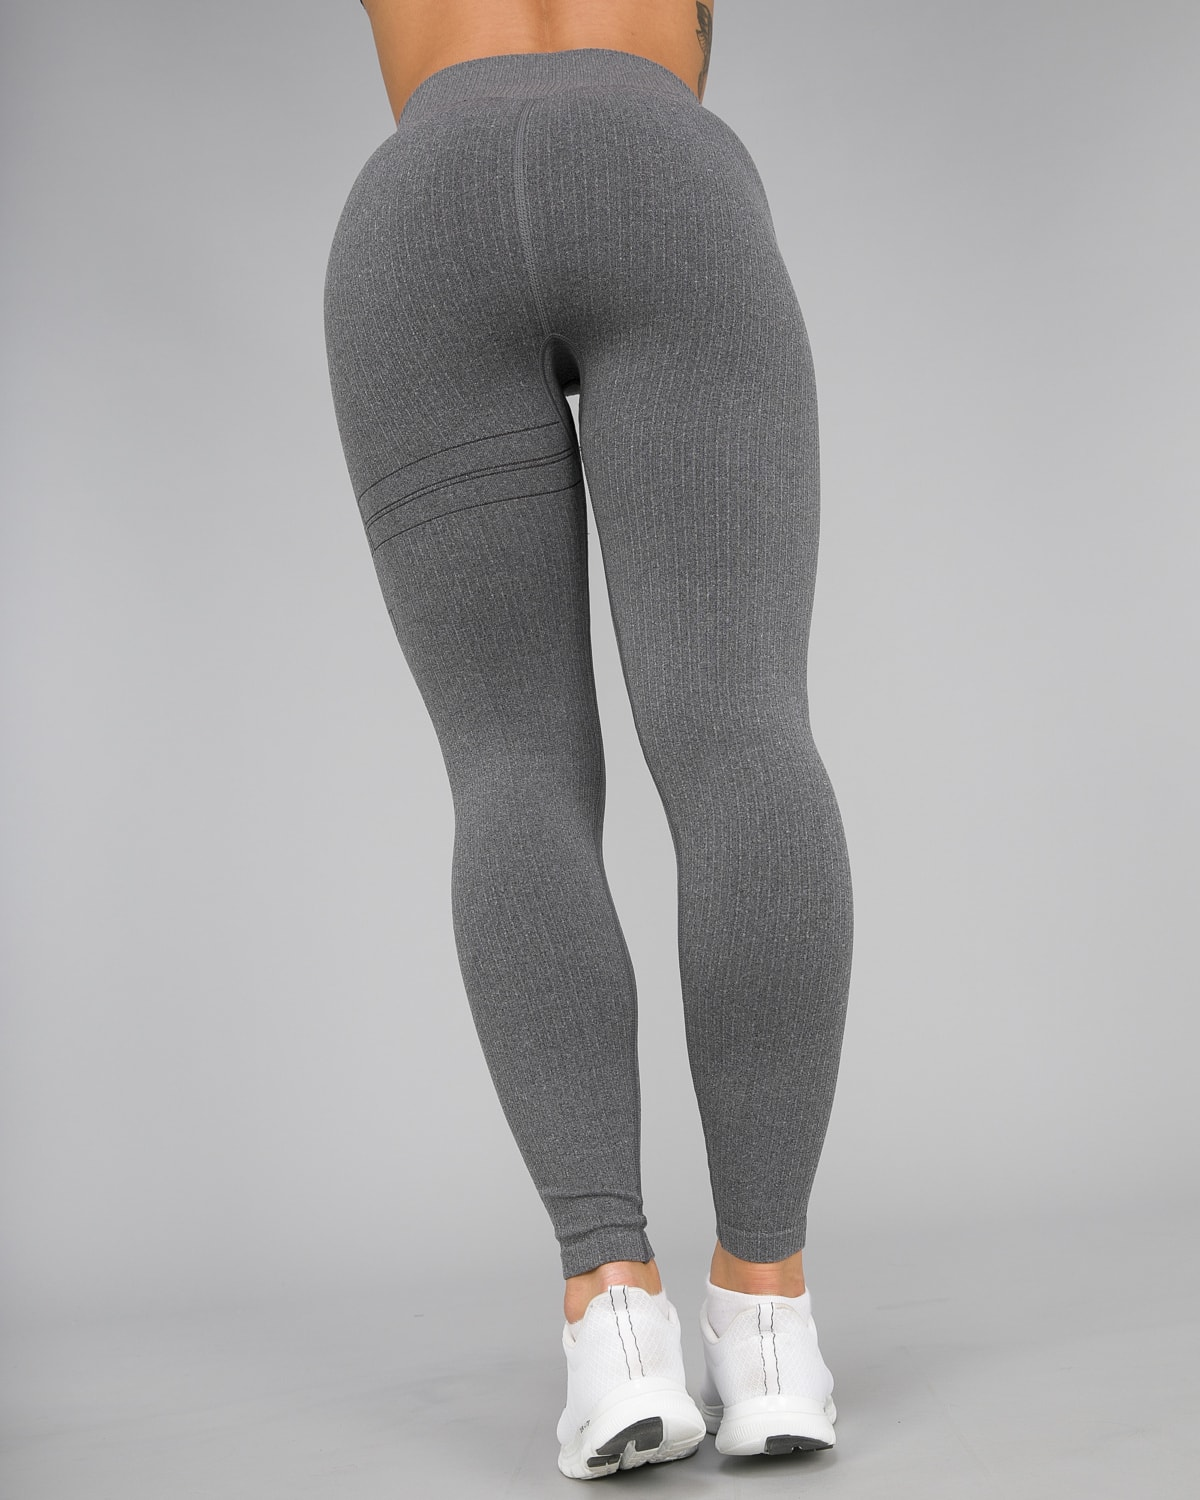 Aim'n Grey Ribbed Seamless Tights13